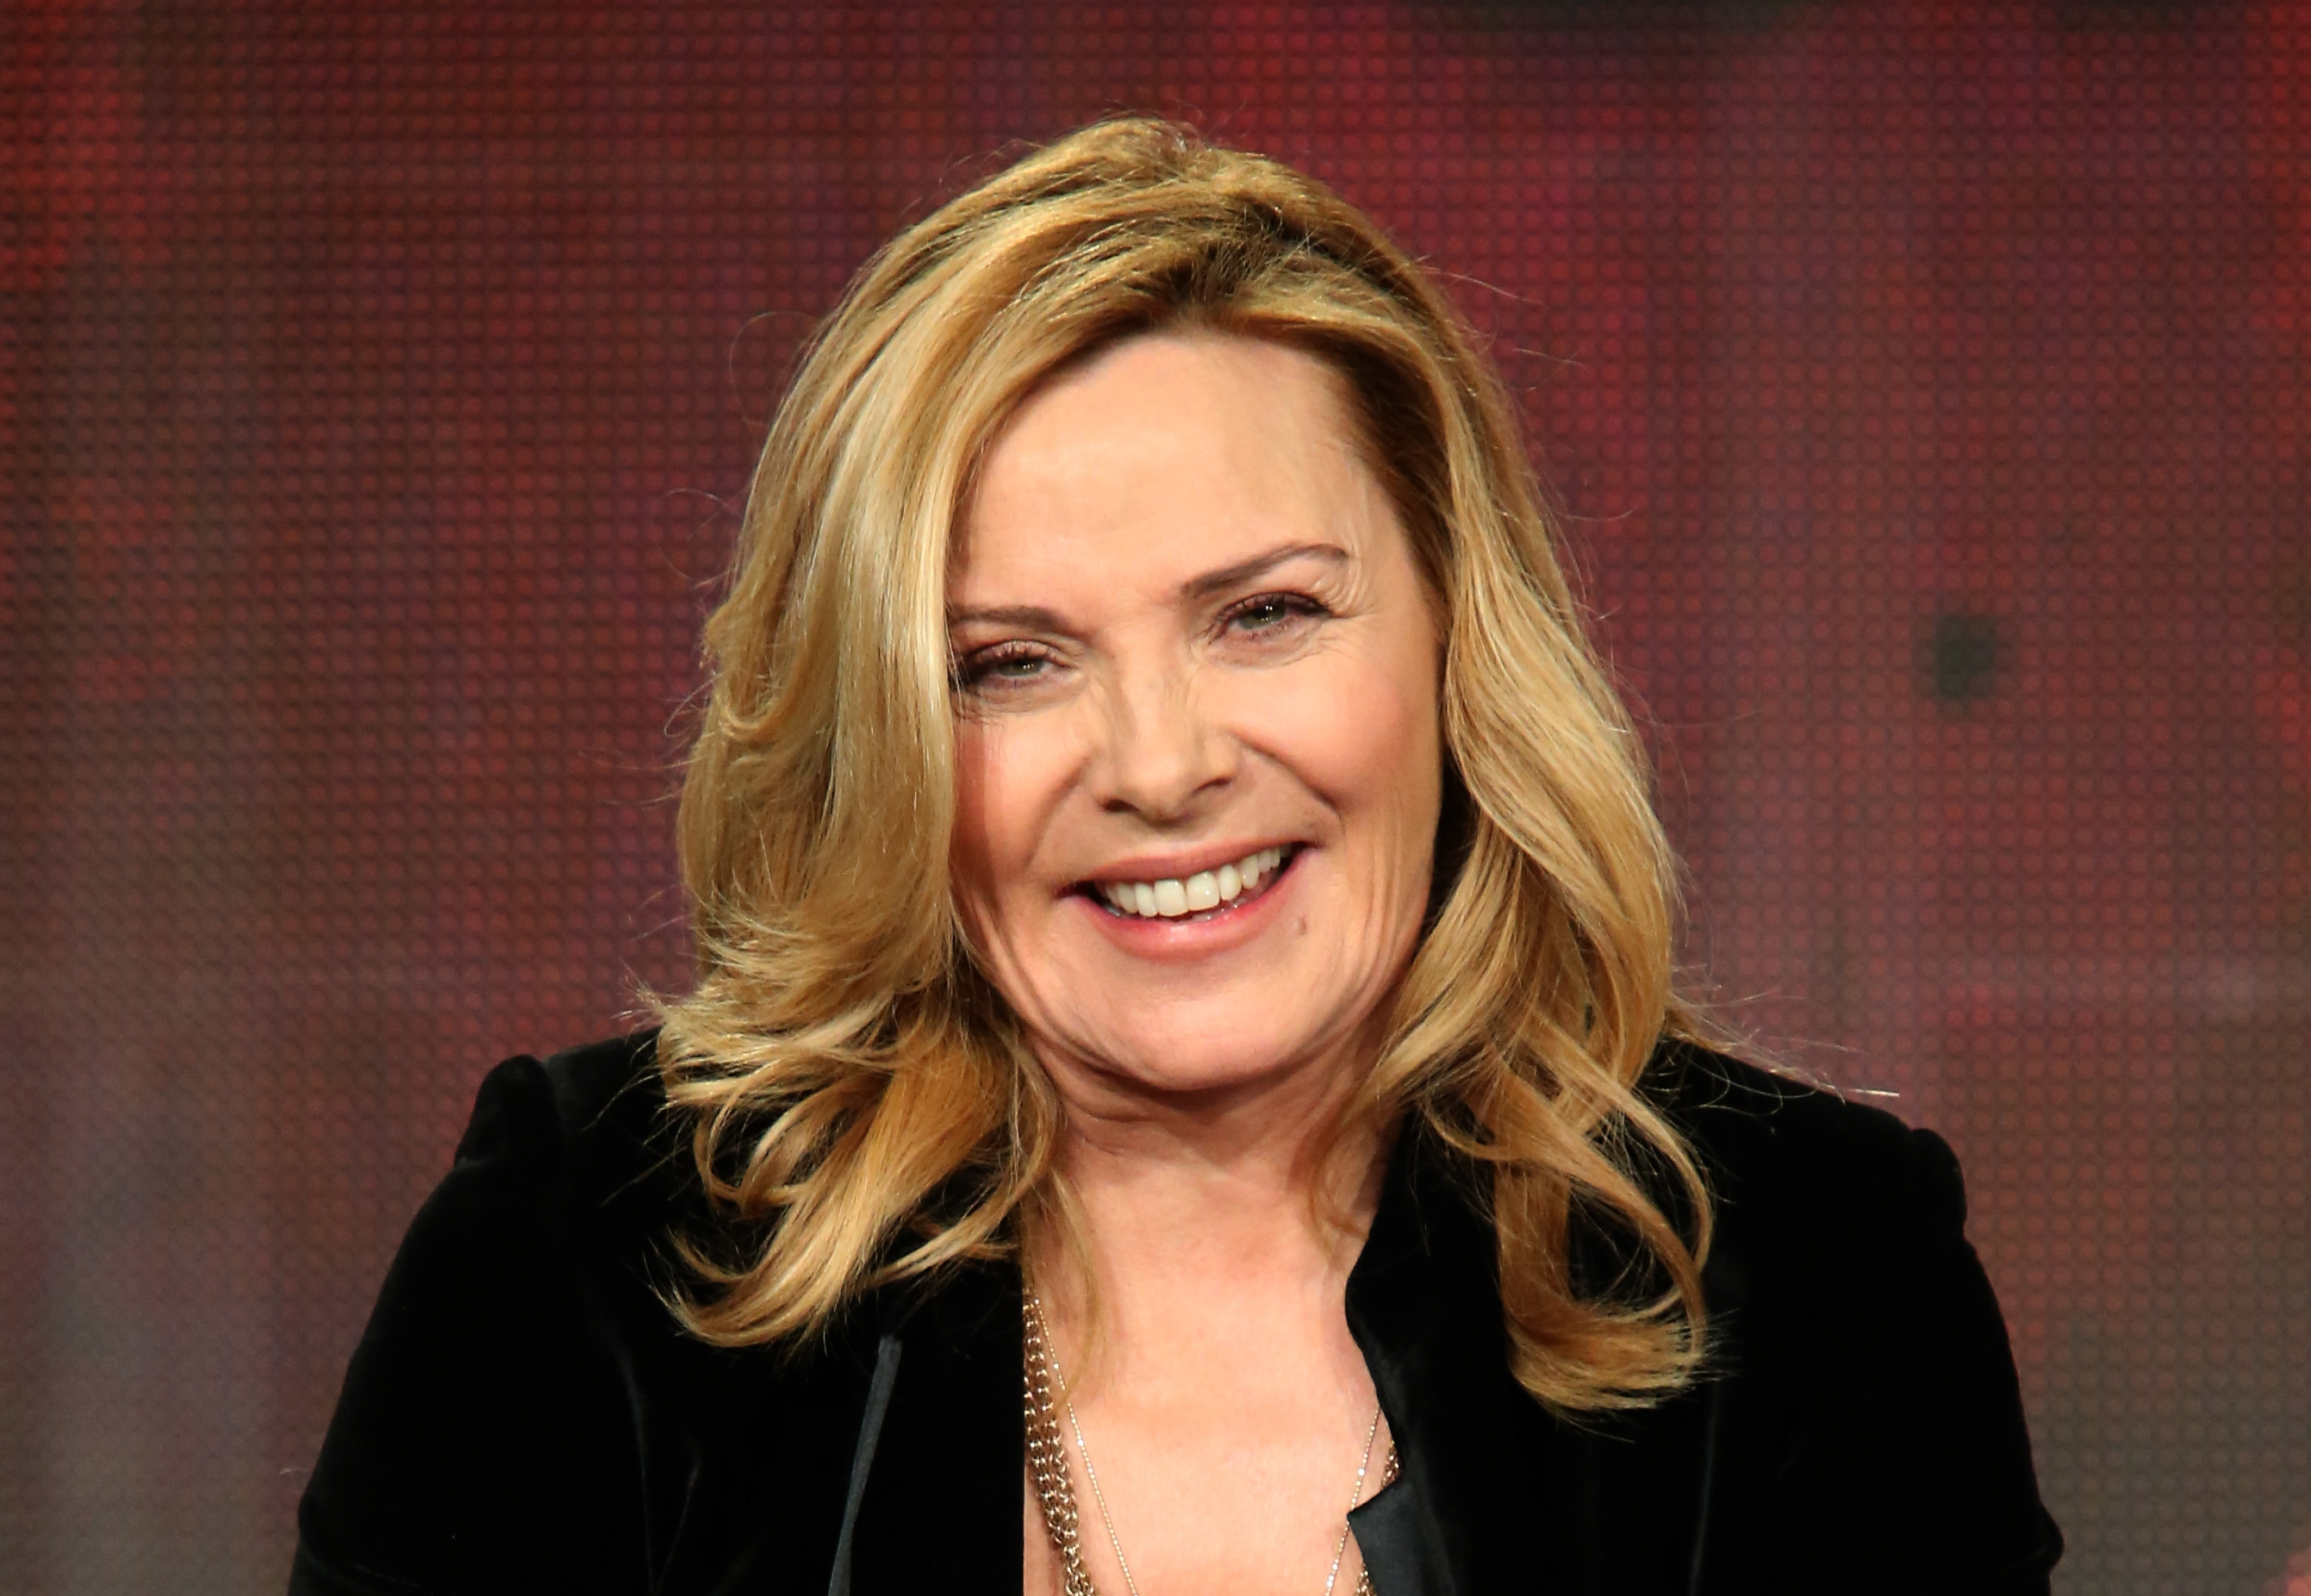 Looks Like Kim Cattrall Just Confirmed That She's Bringing Samantha Back in an 'SATC' Spin-Off